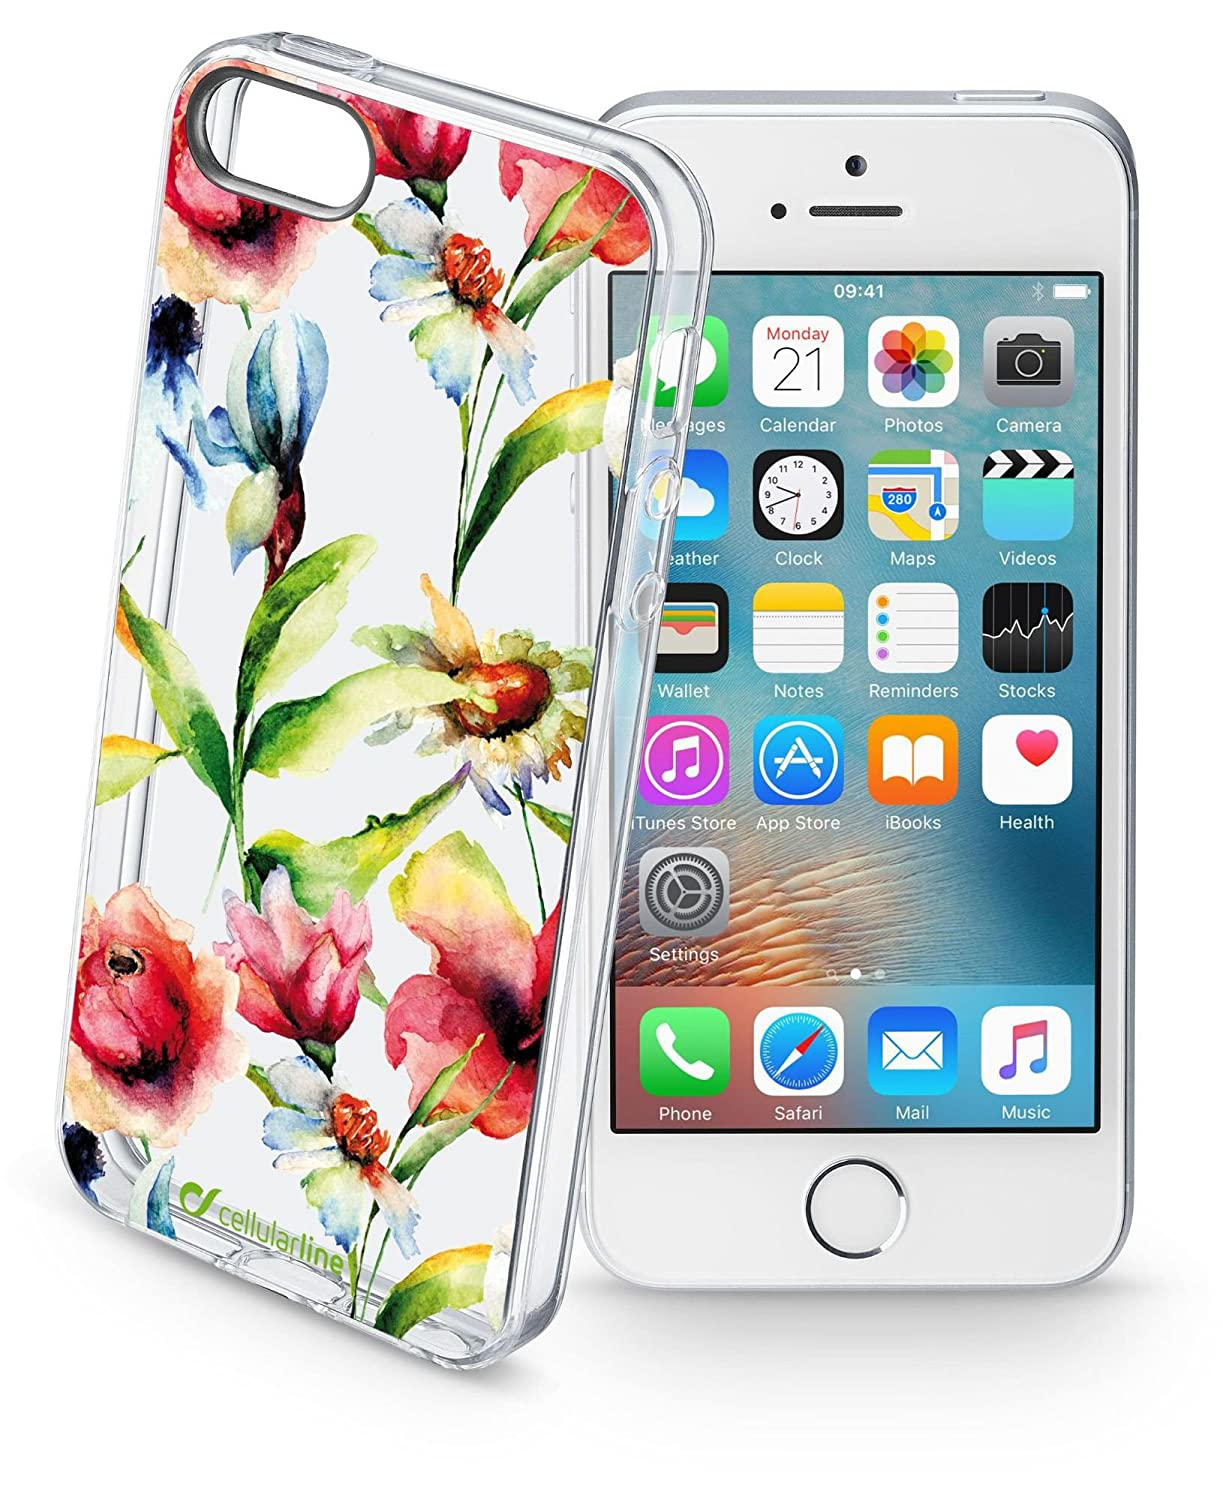 cover iphone 5c cellular line